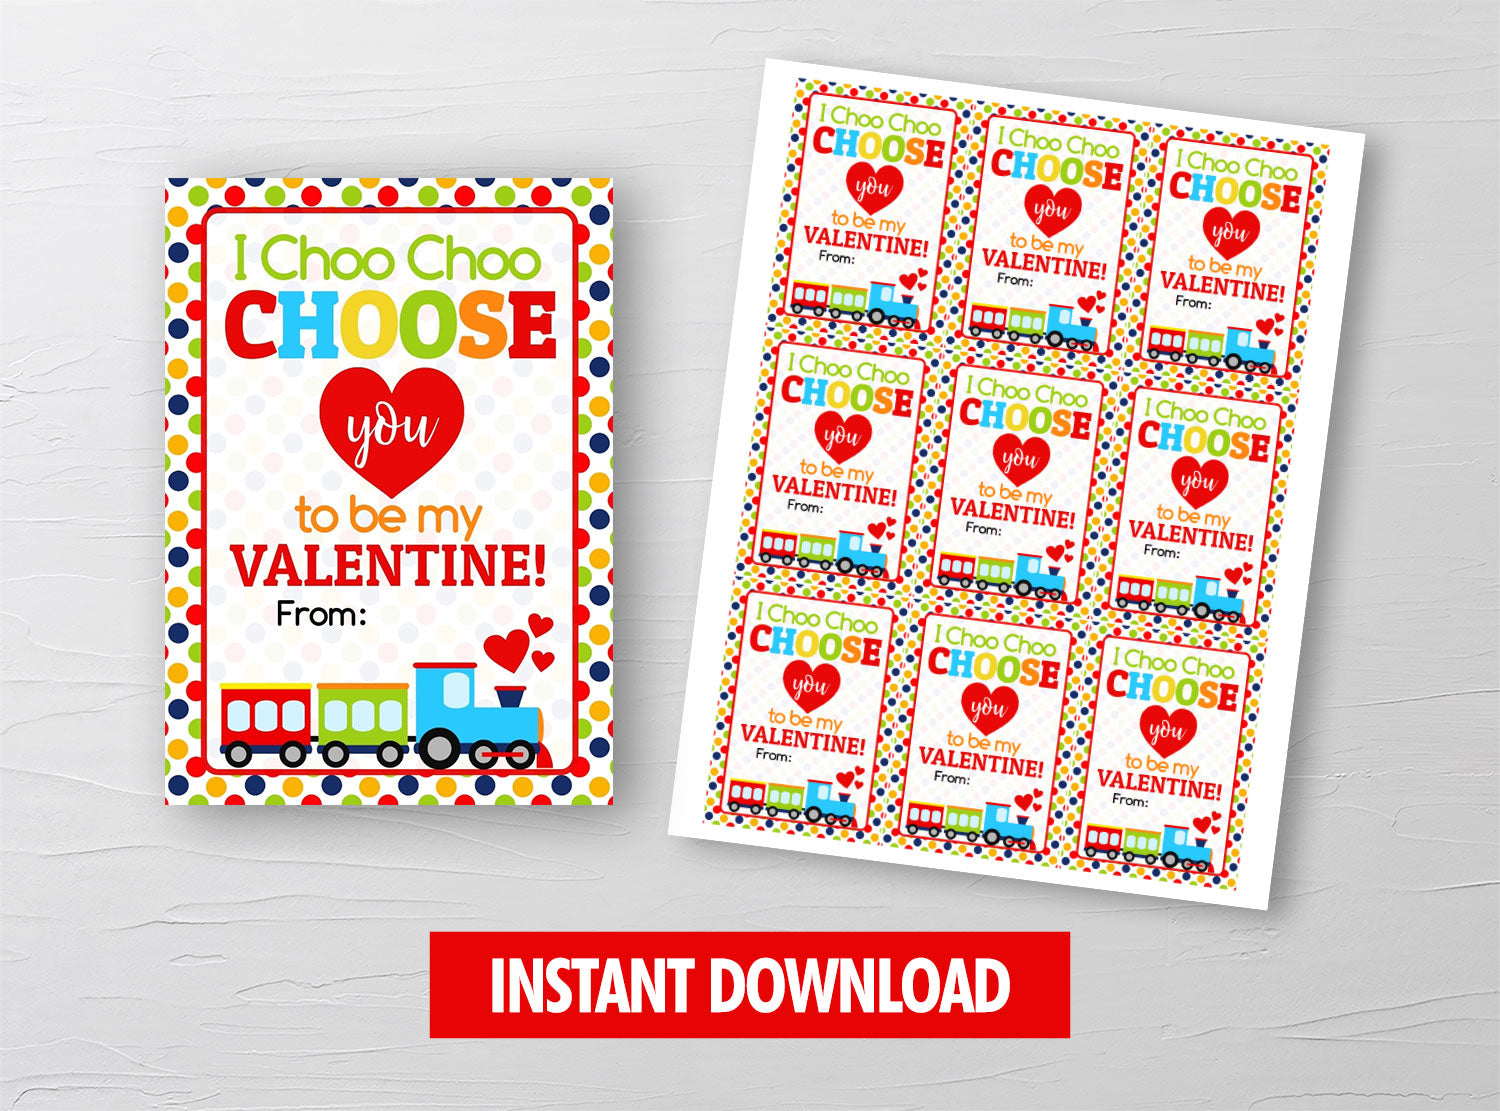 I Choo Choo Choose You Valentine Card, Train Gift Tag, School Exchange Ideas, INSTANT DOWNLOAD - TitaTipsPrintables